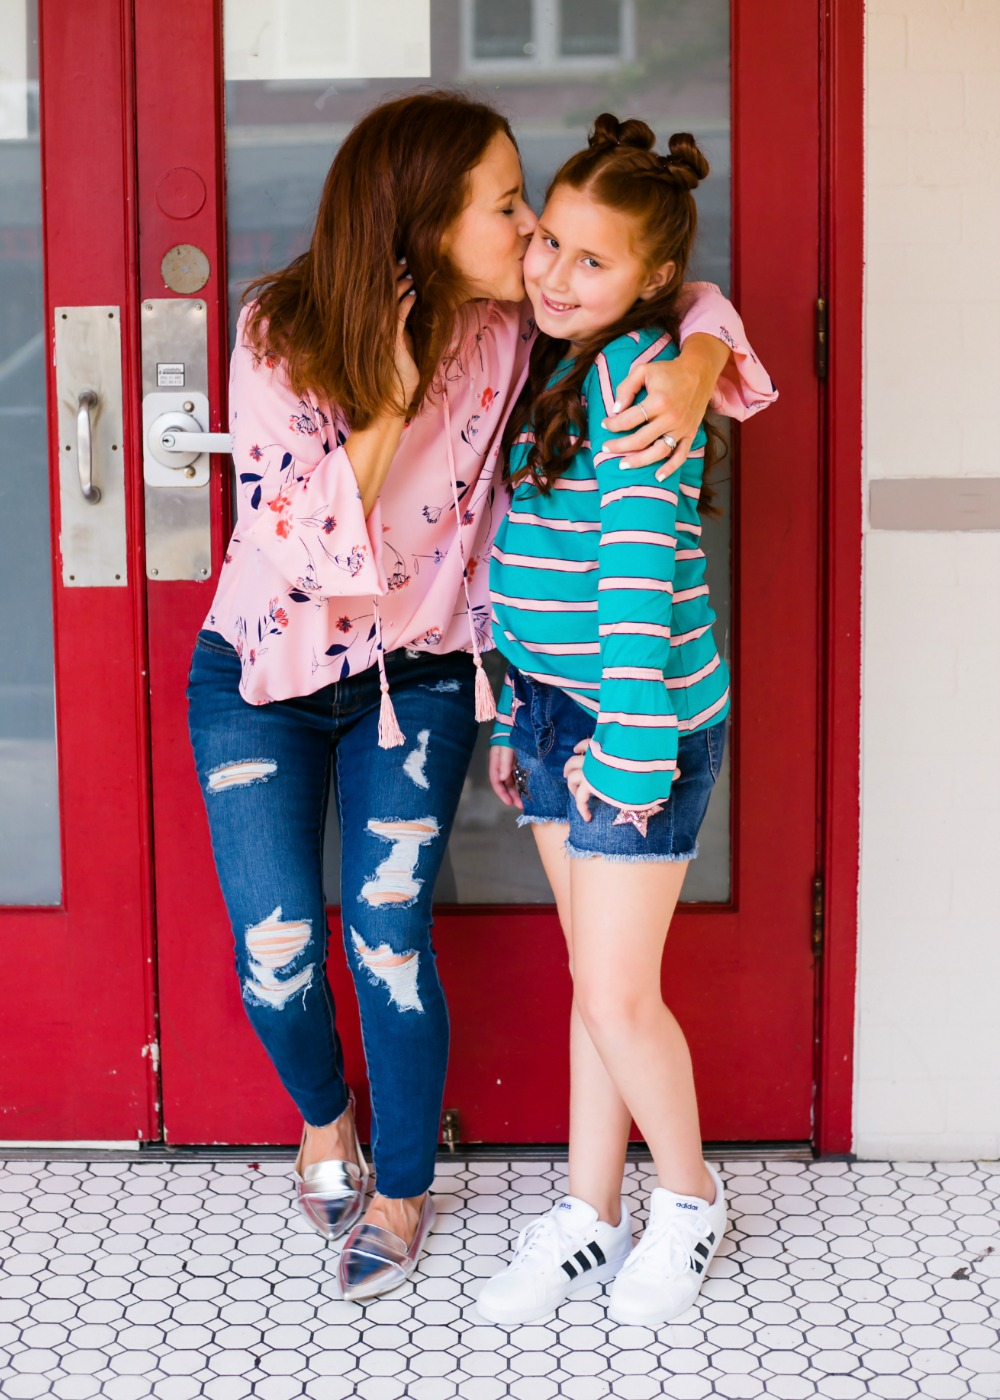 Mother daughter redheads styling what's on trend for fall - Back to School Style, with JCPenney featured by popular Florida fashion blogger, The Modern Savvy